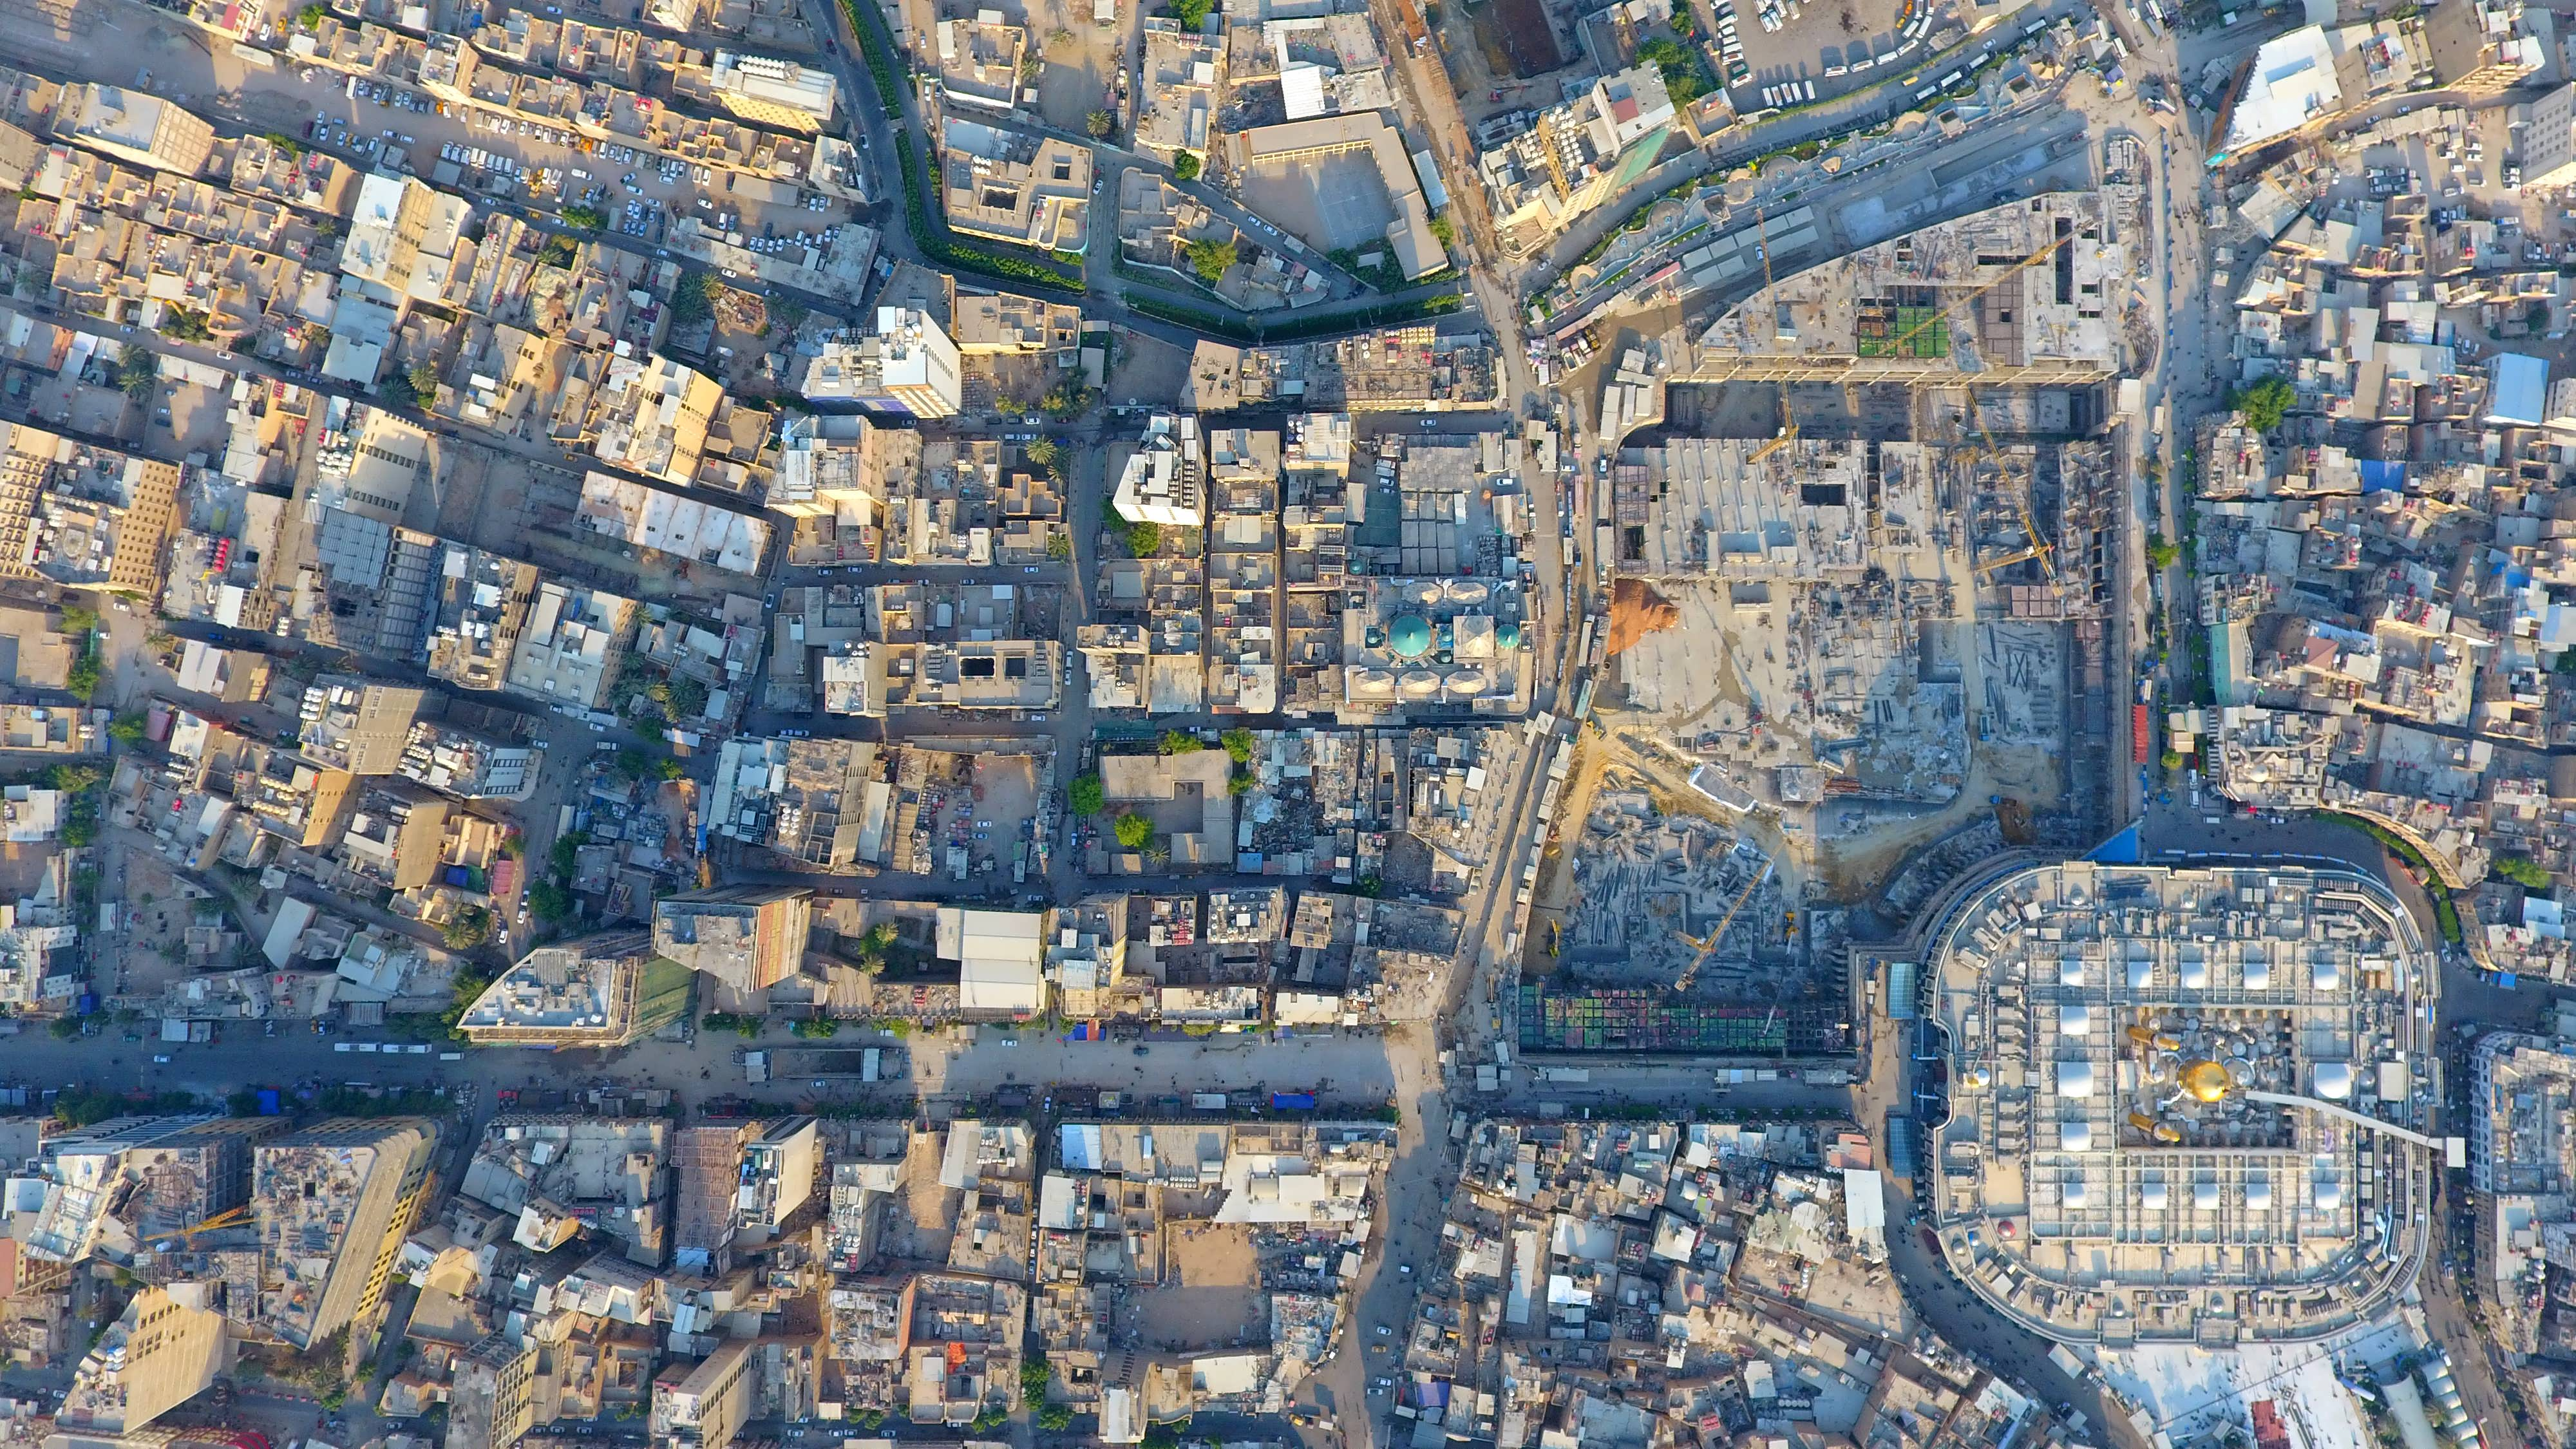 Karbala-An aerial Image of